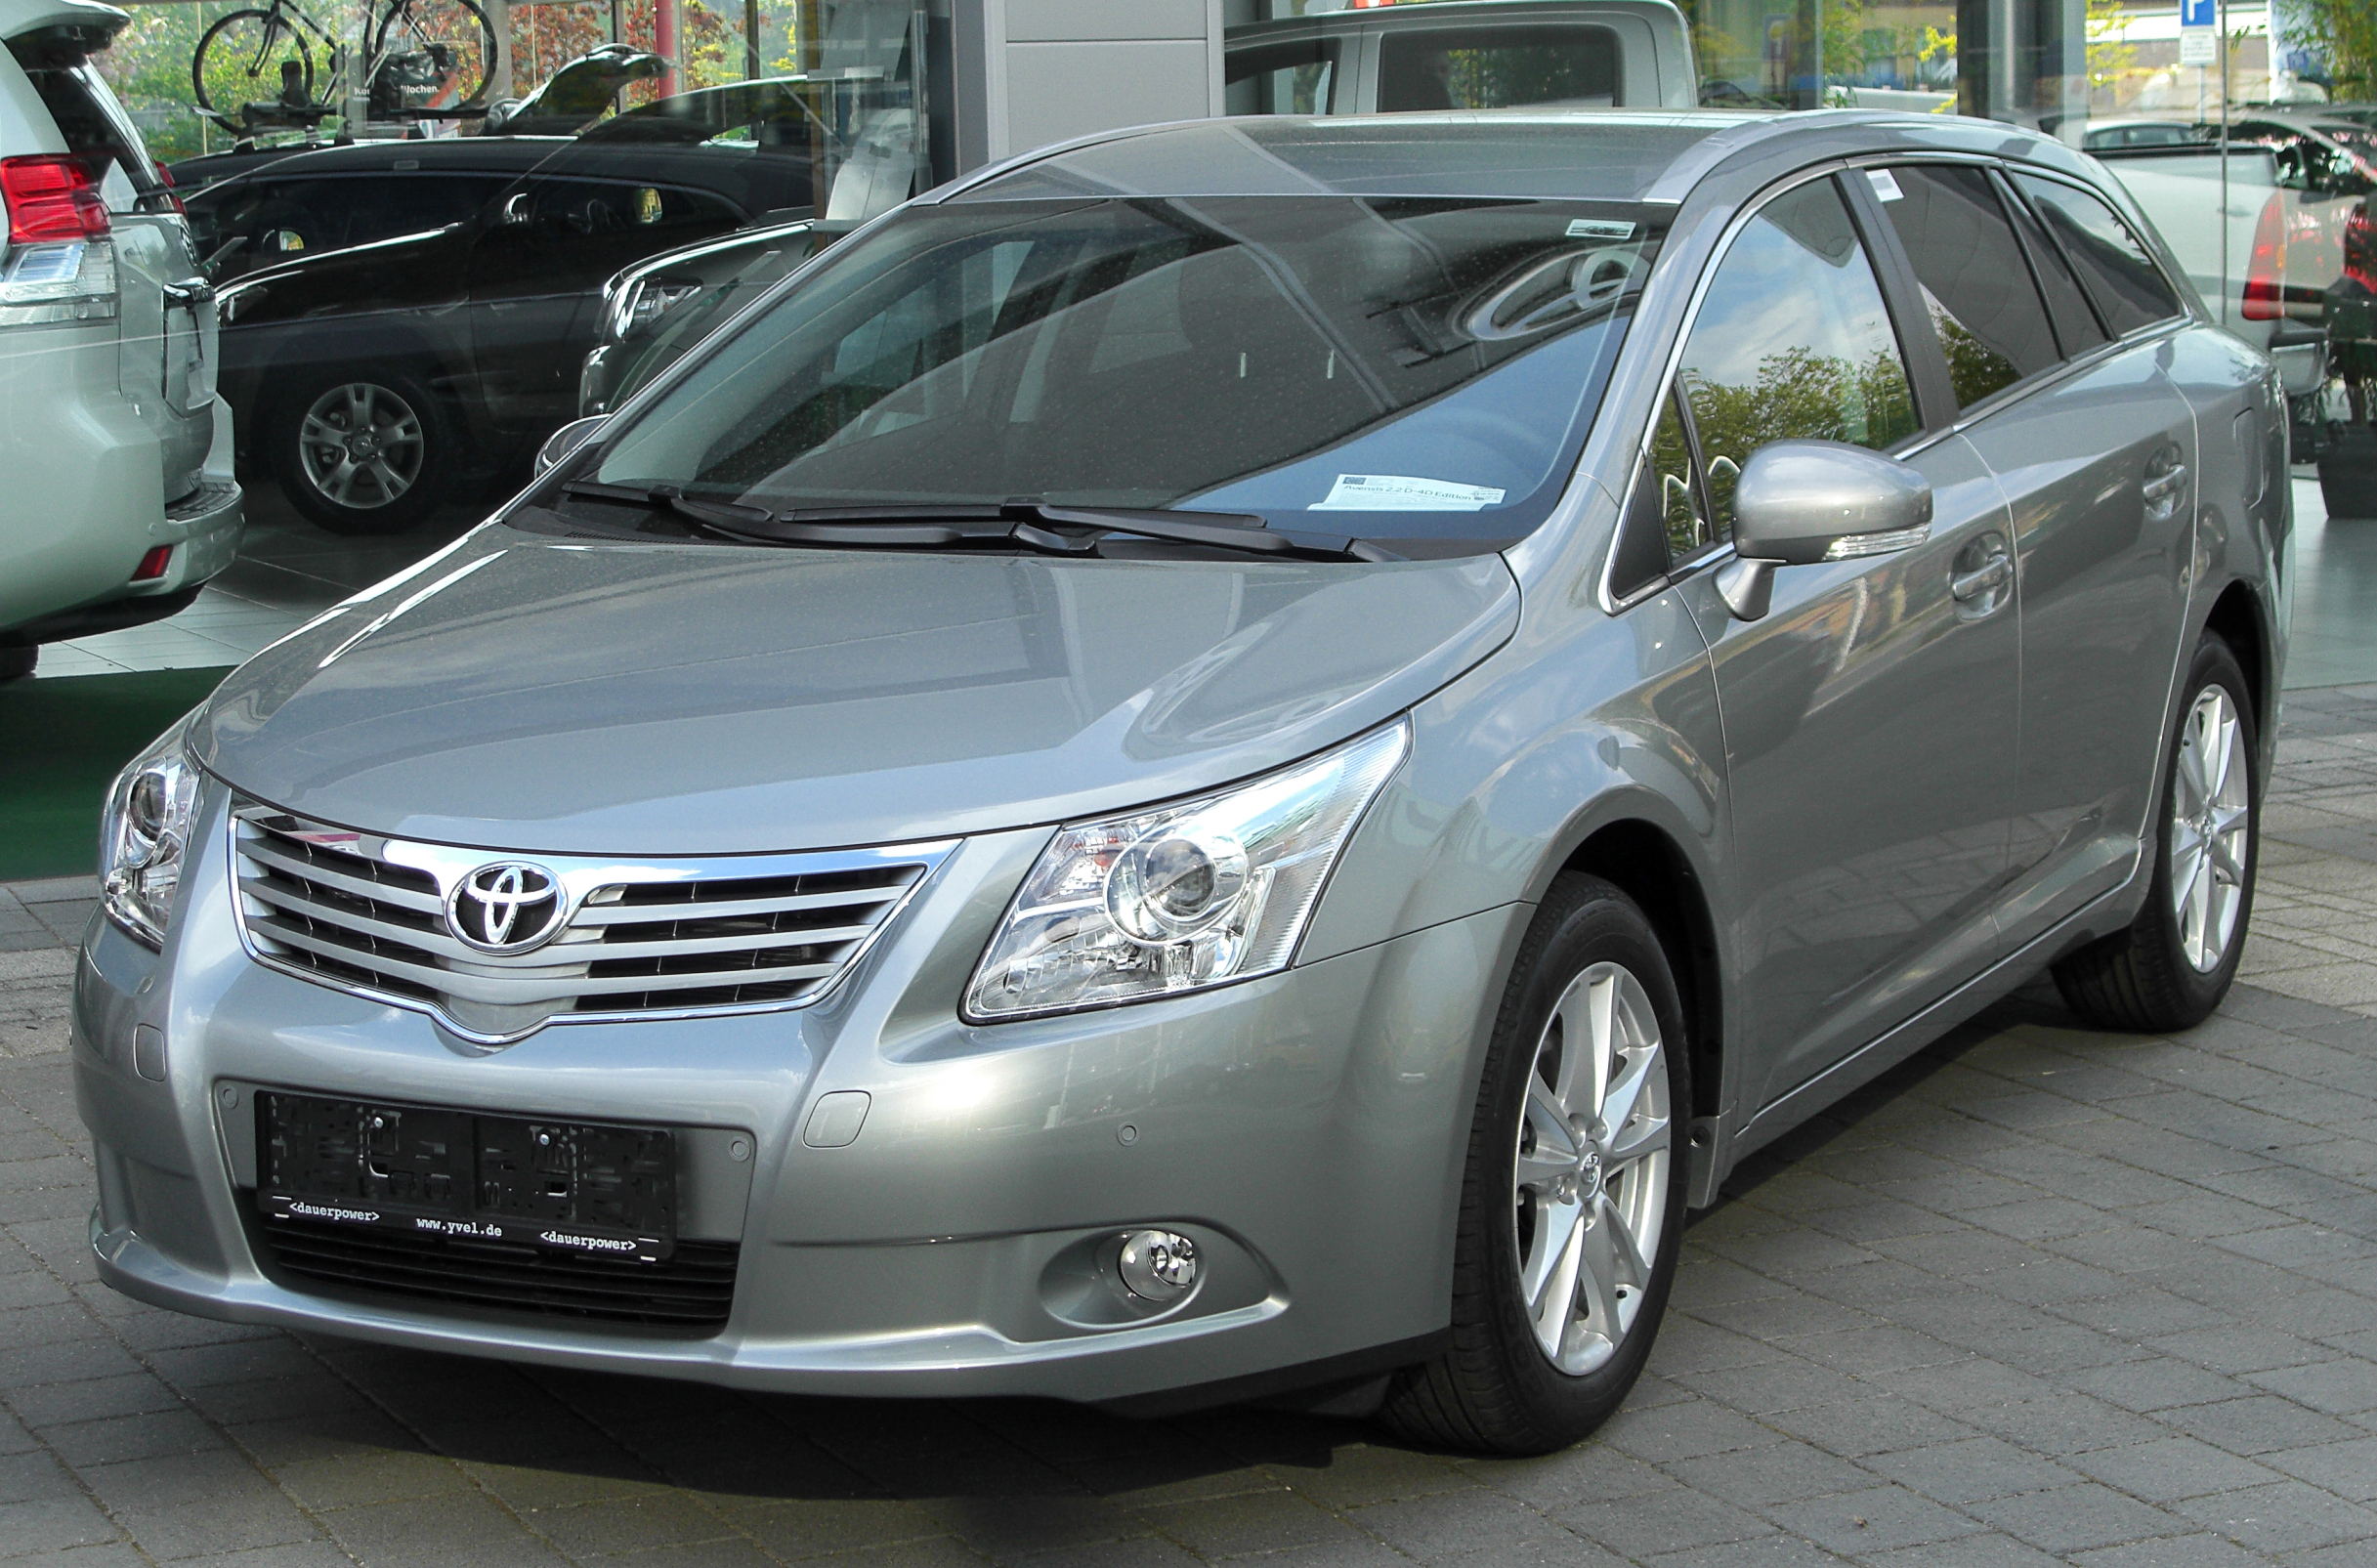 file:toyota avensis combi iii 2.2 d-4d front 20100501